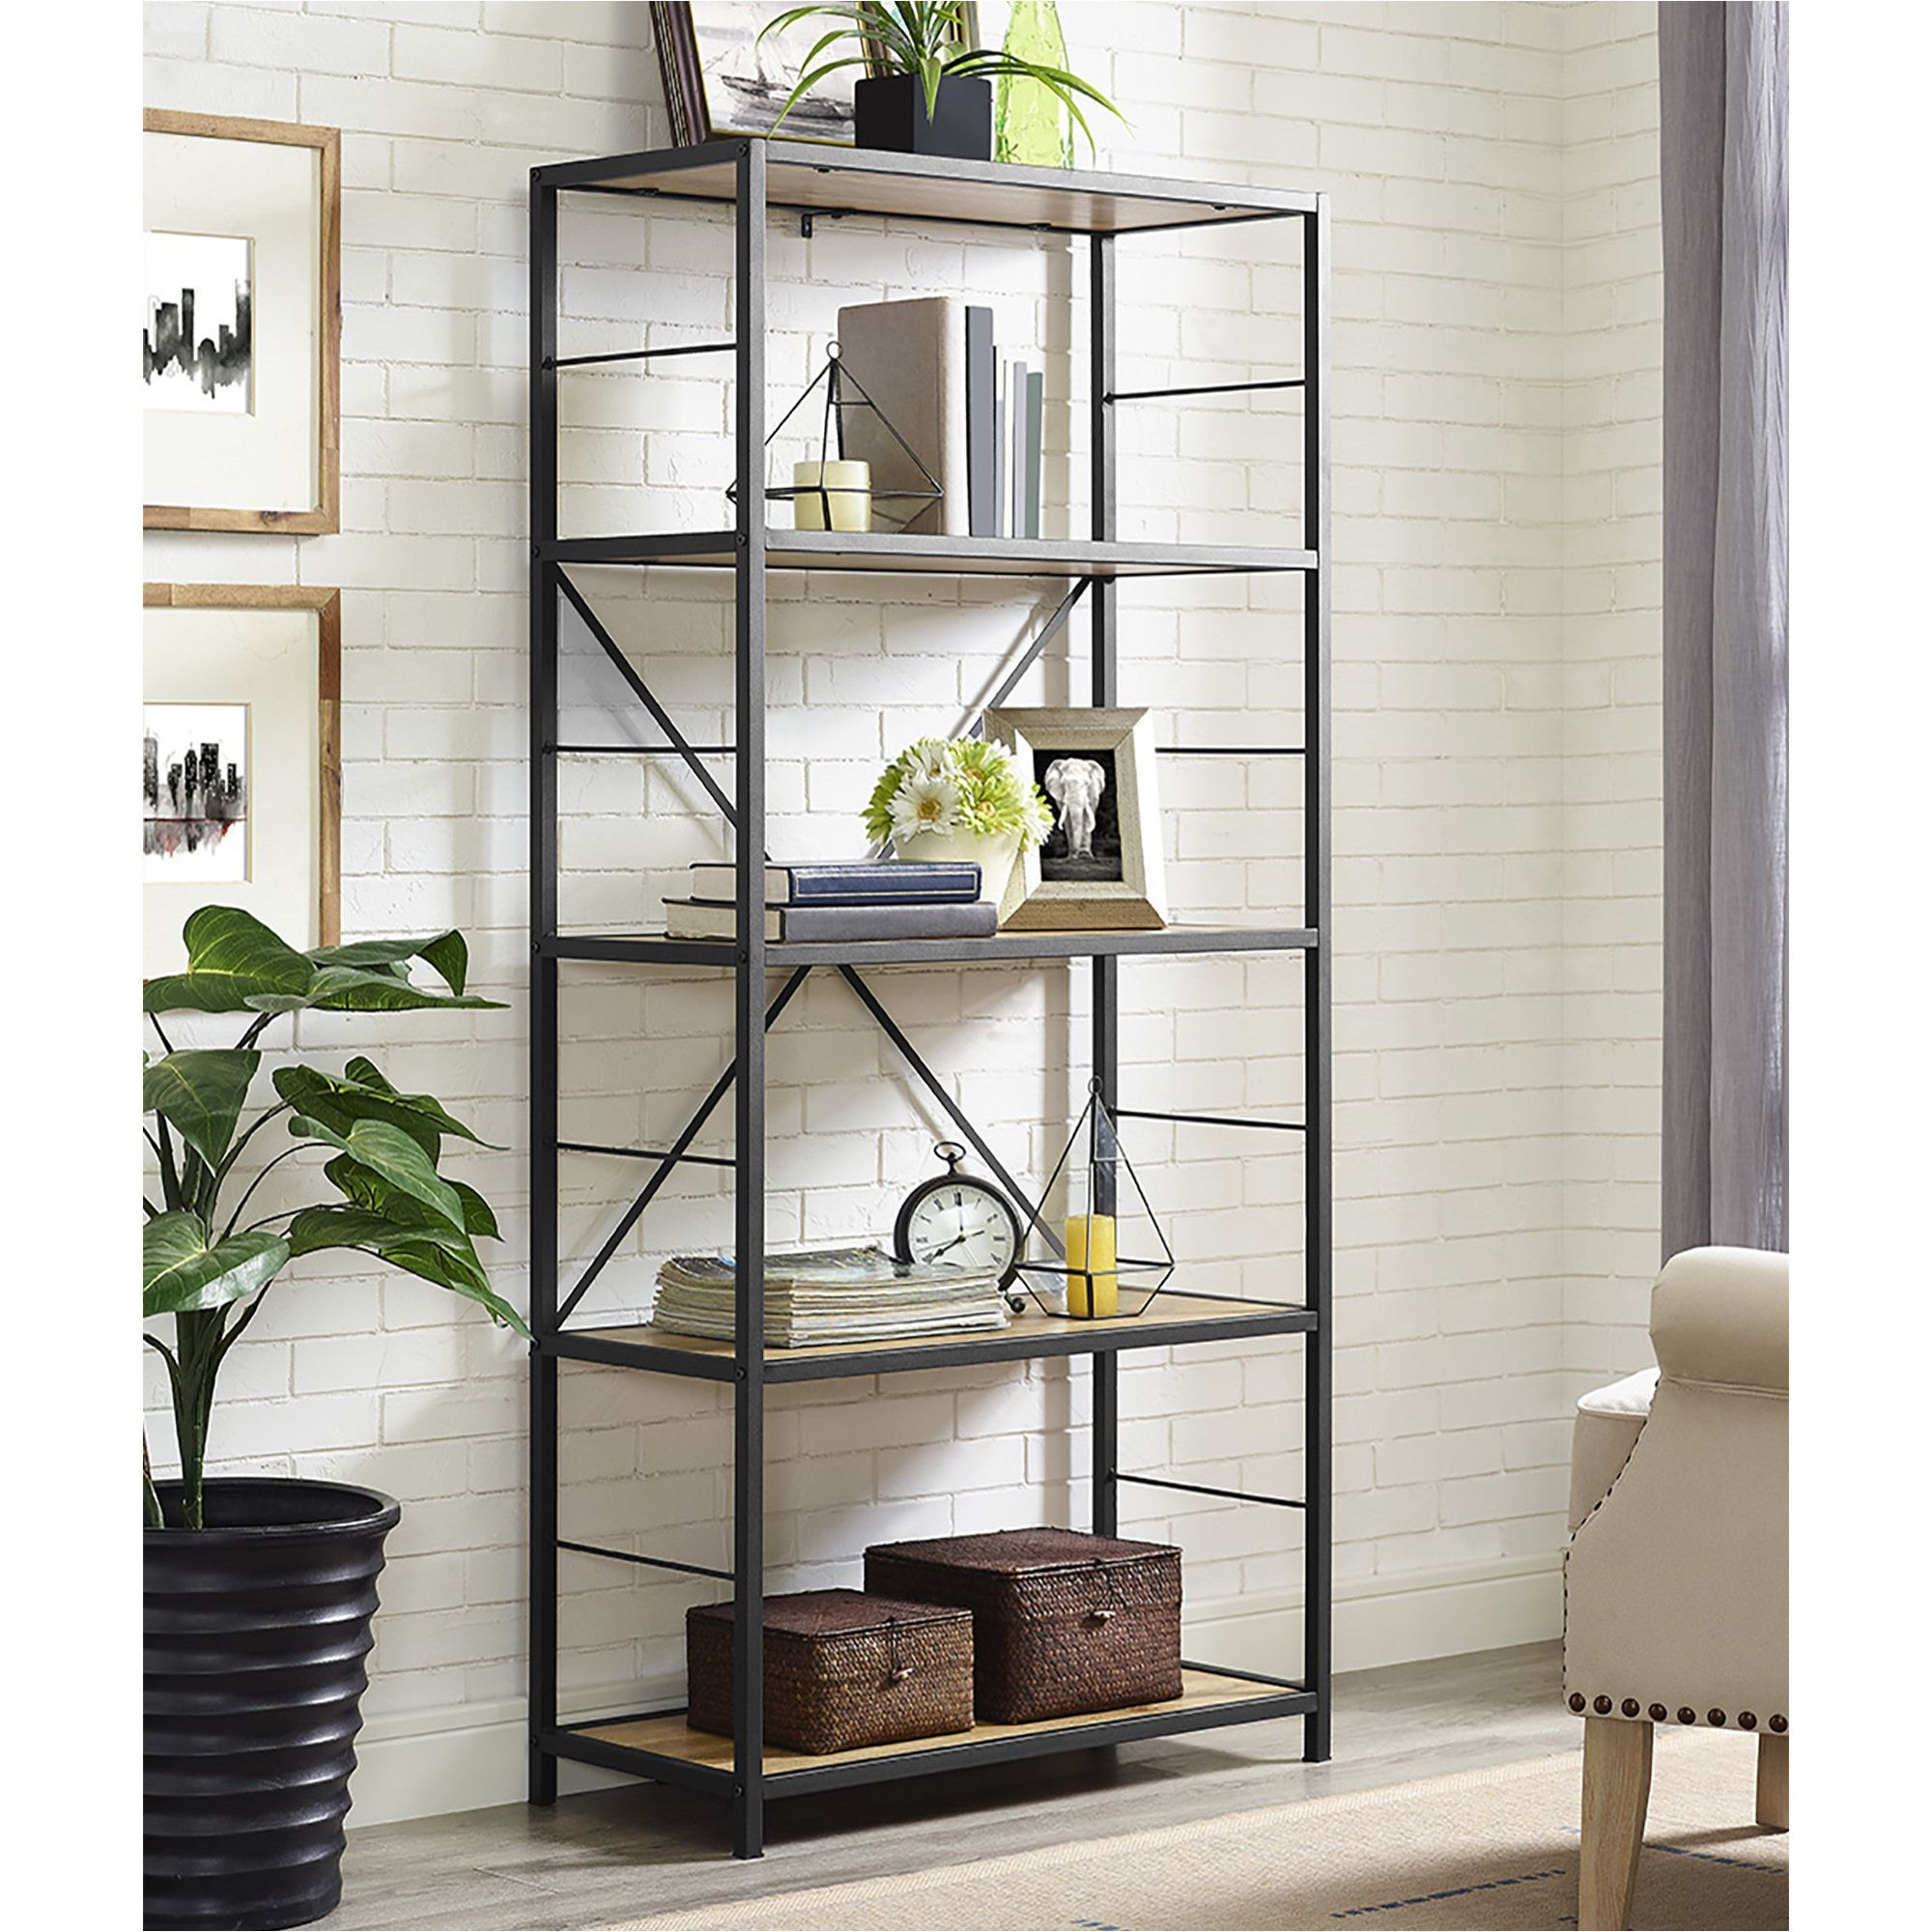 60 Rustic Metal And Wood Media Bookshelf